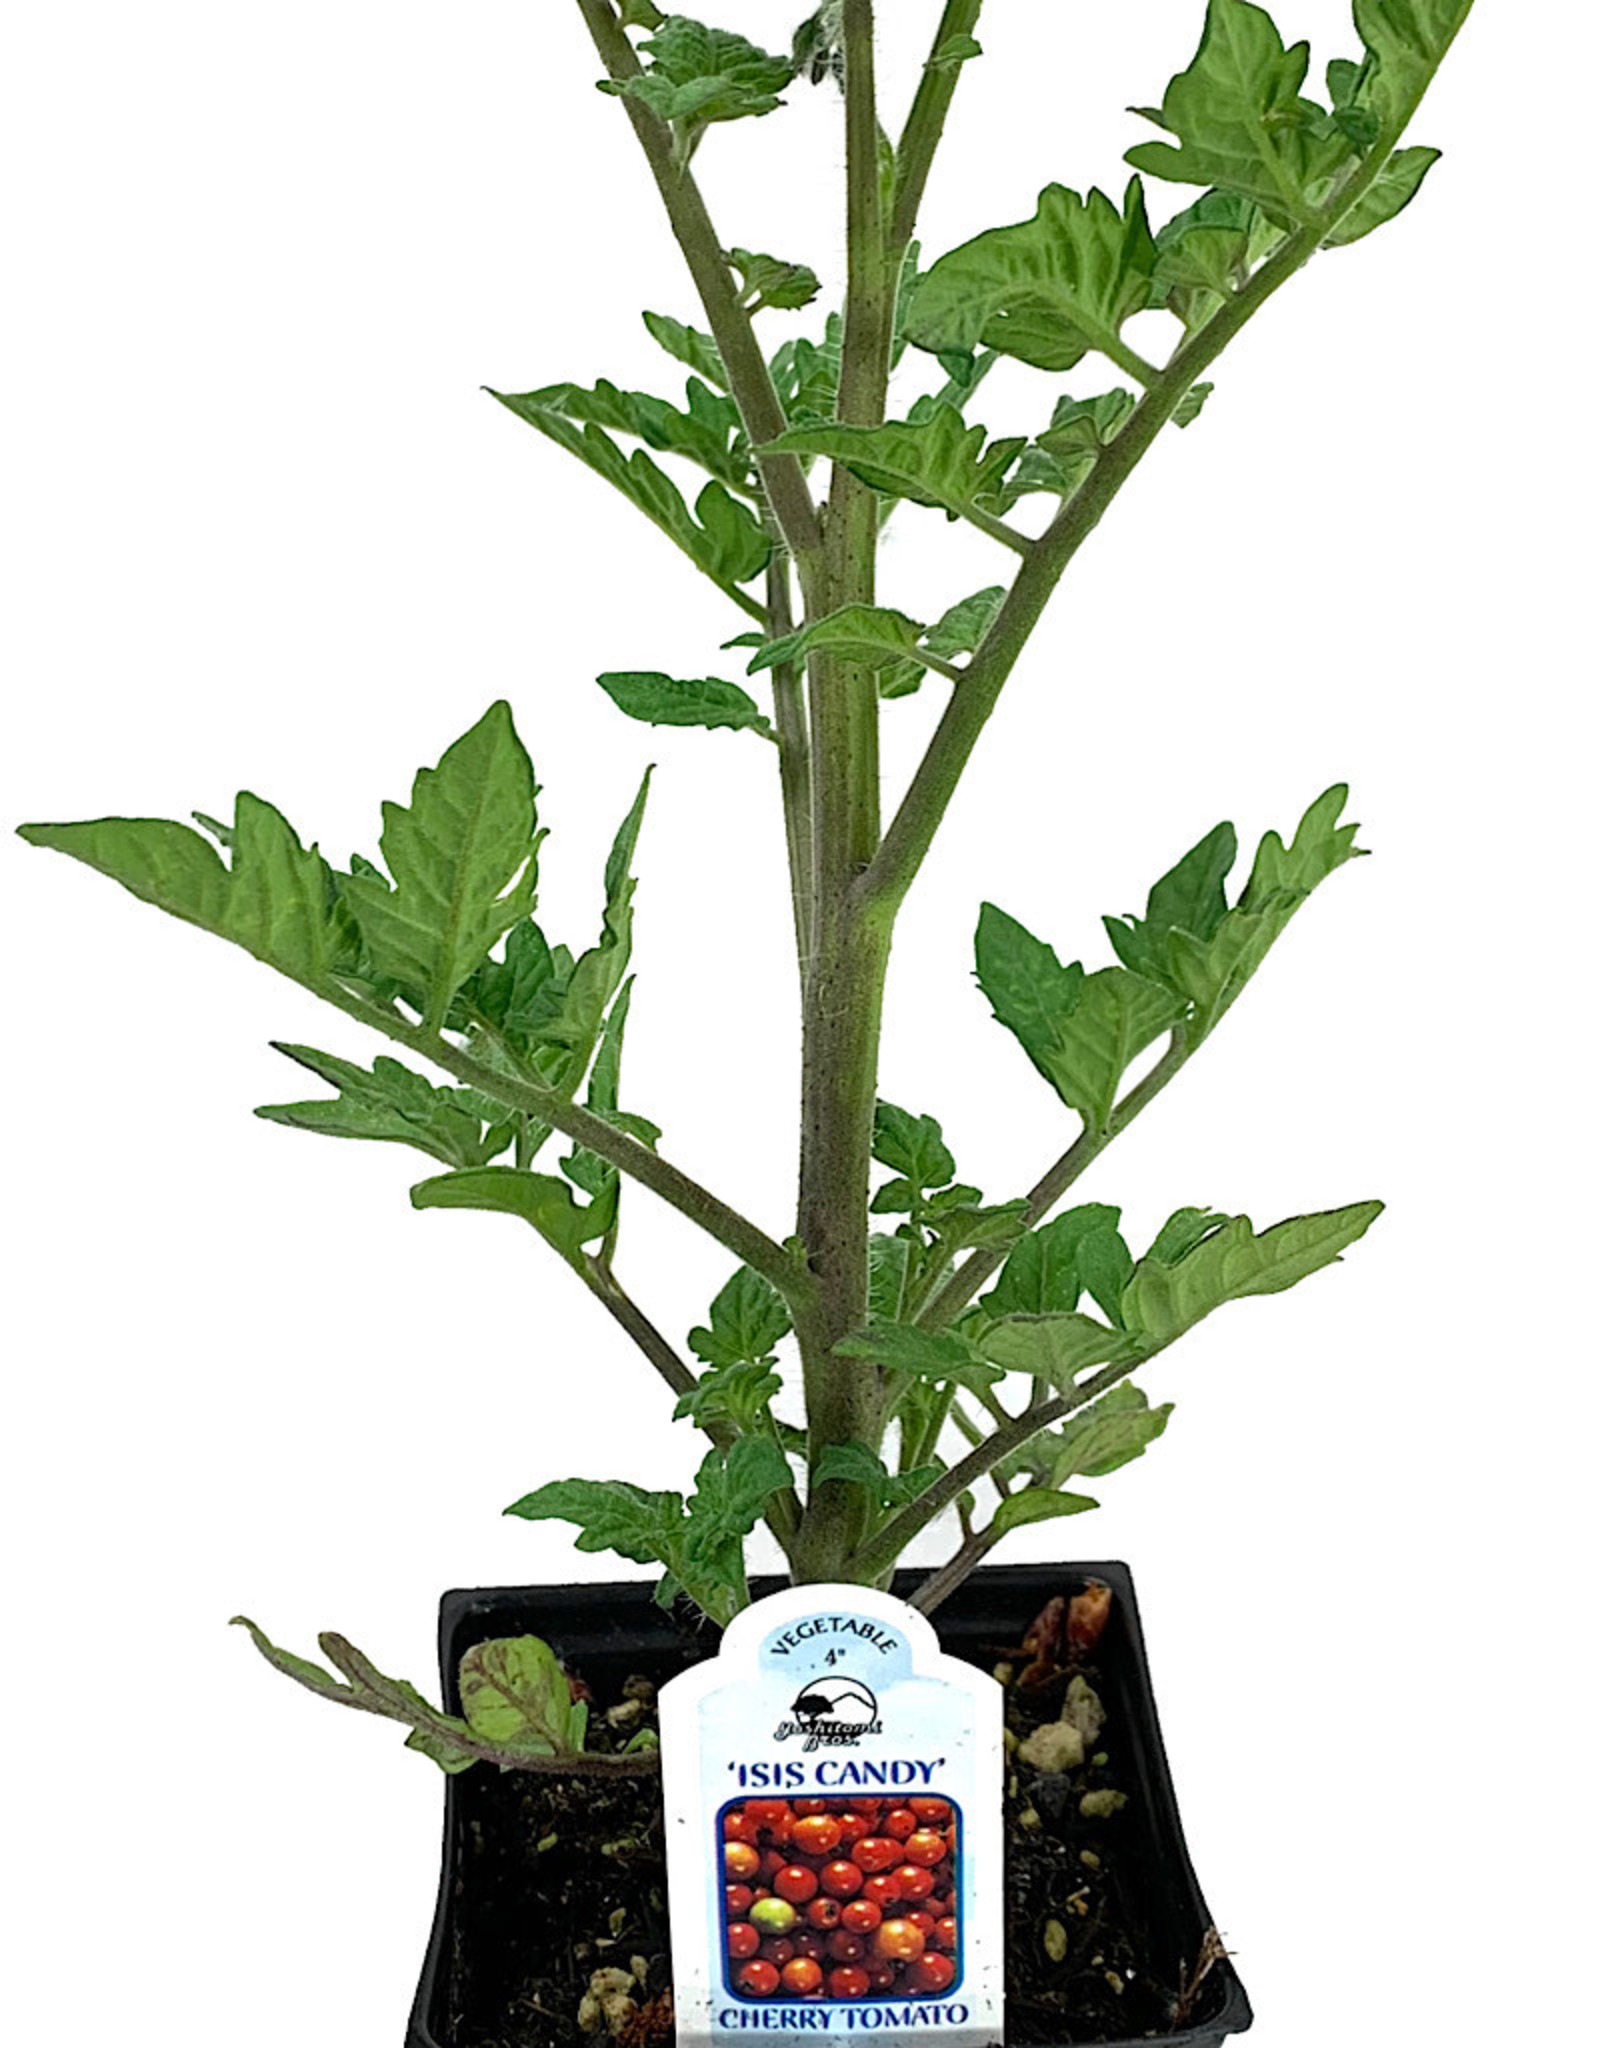 Tomato 'Isis Candy' 4 Inch